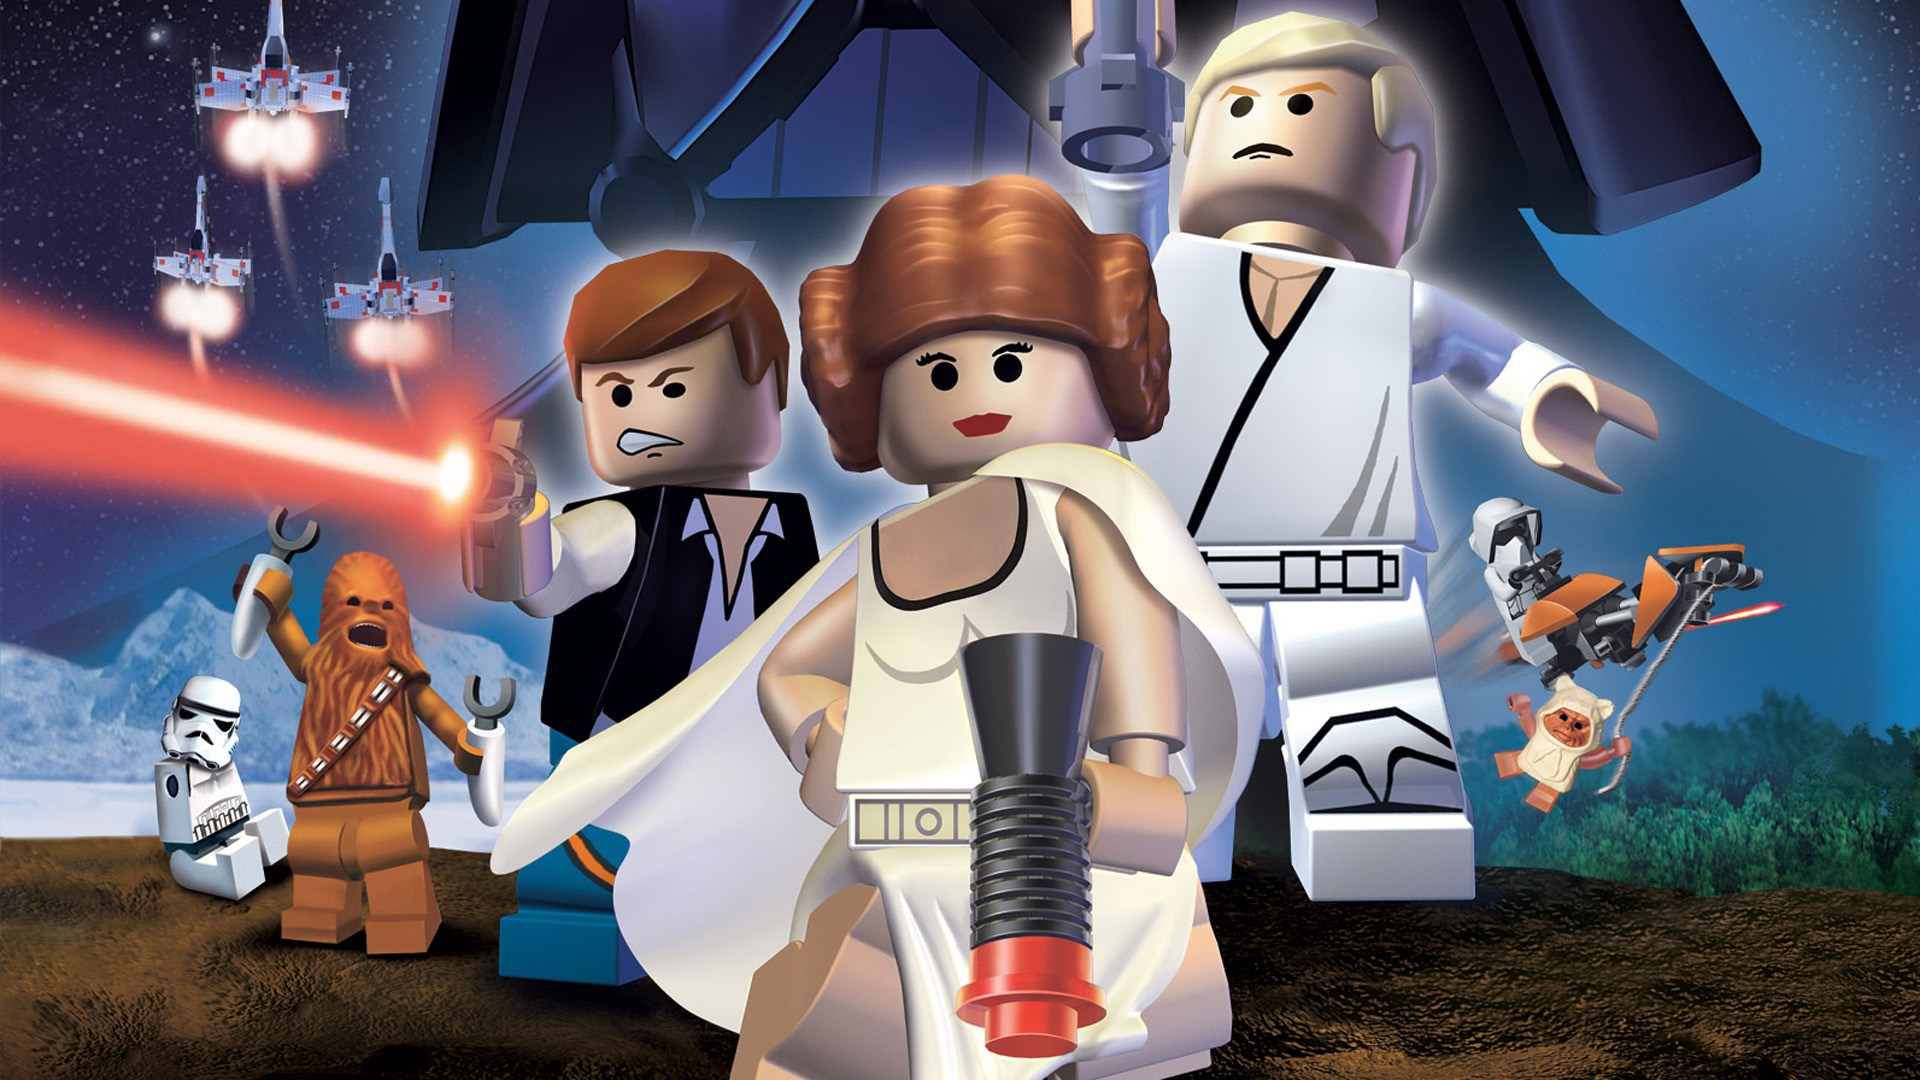 1920x1080-HQ-Definition-Desktop-lego-star-wars-ii-the-original-trilogy-wallpaper-wpc580912